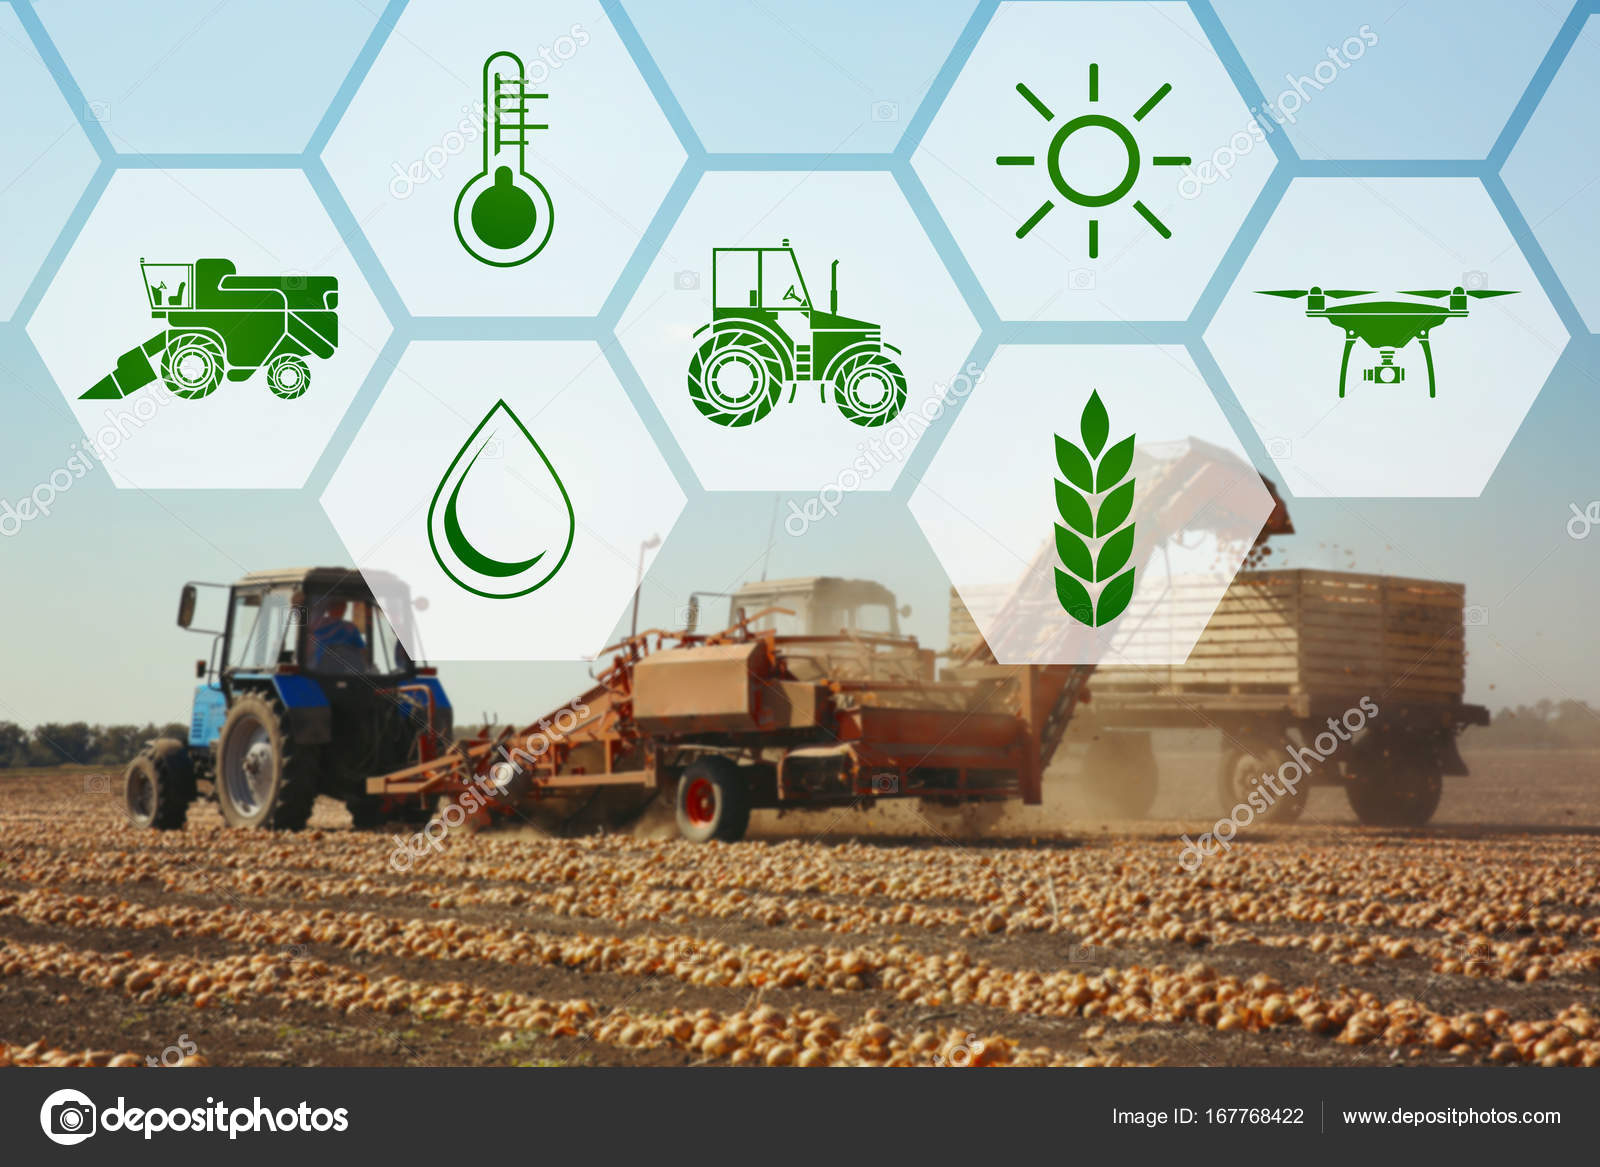 Icons And Process Of Harvesting With Modern Agricultural Equipment On Background Concept Smart Agriculture Technology Photo By Belchonock